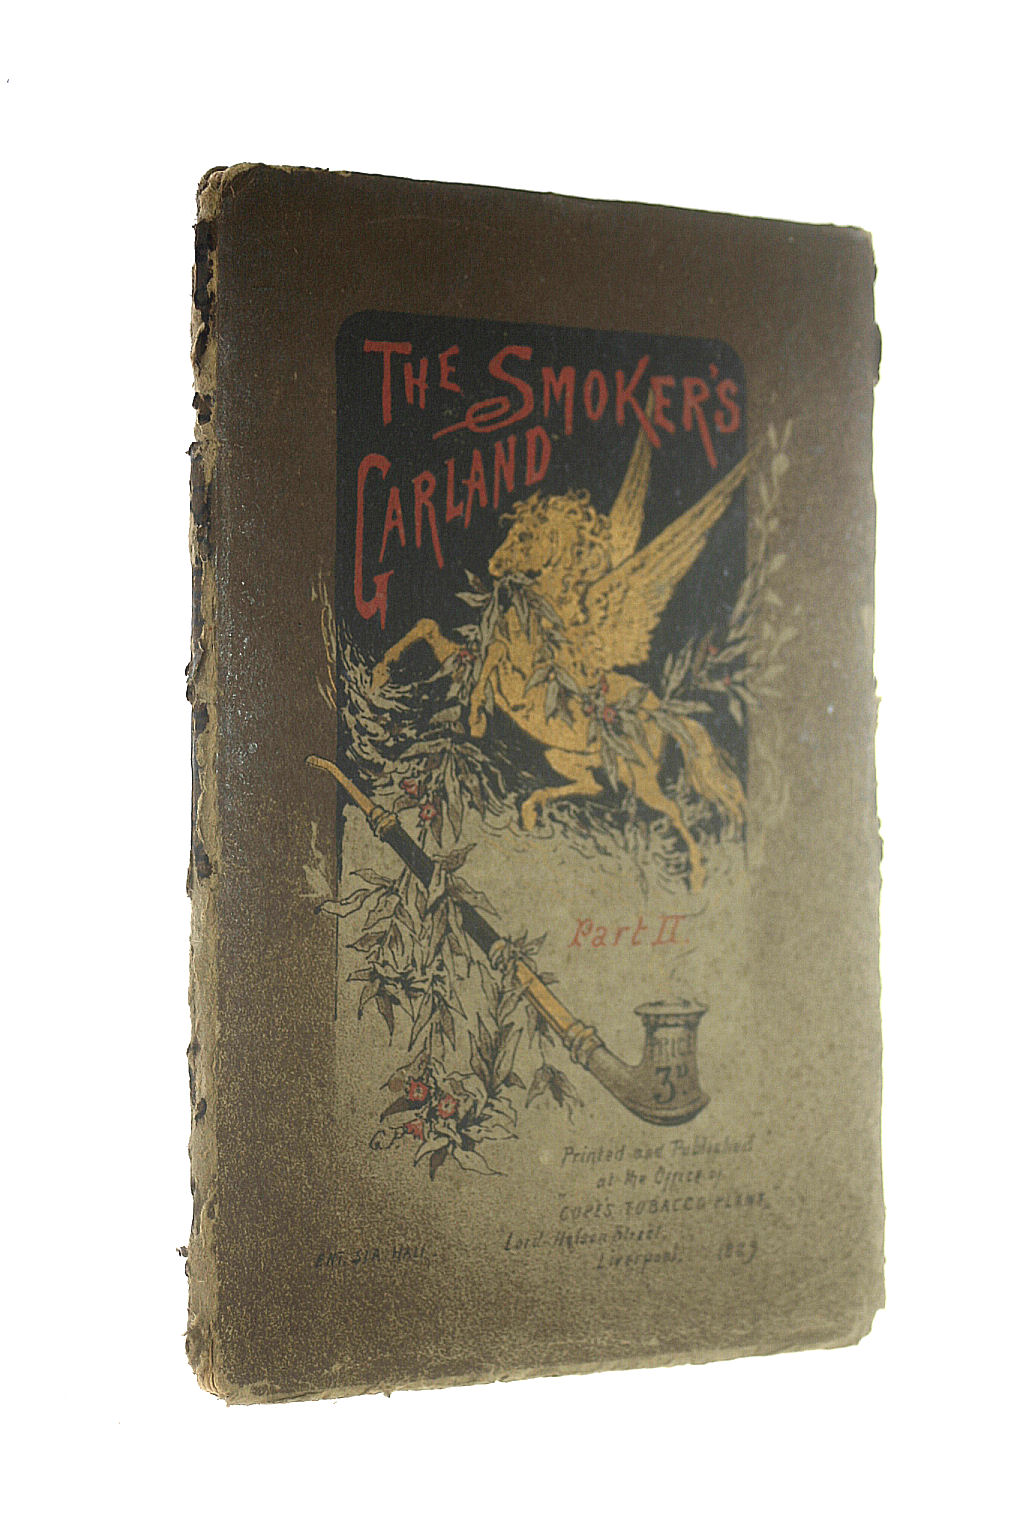 Image for The Smoker's Garland Part II. Cope's Smoke Room Booklets No. 6